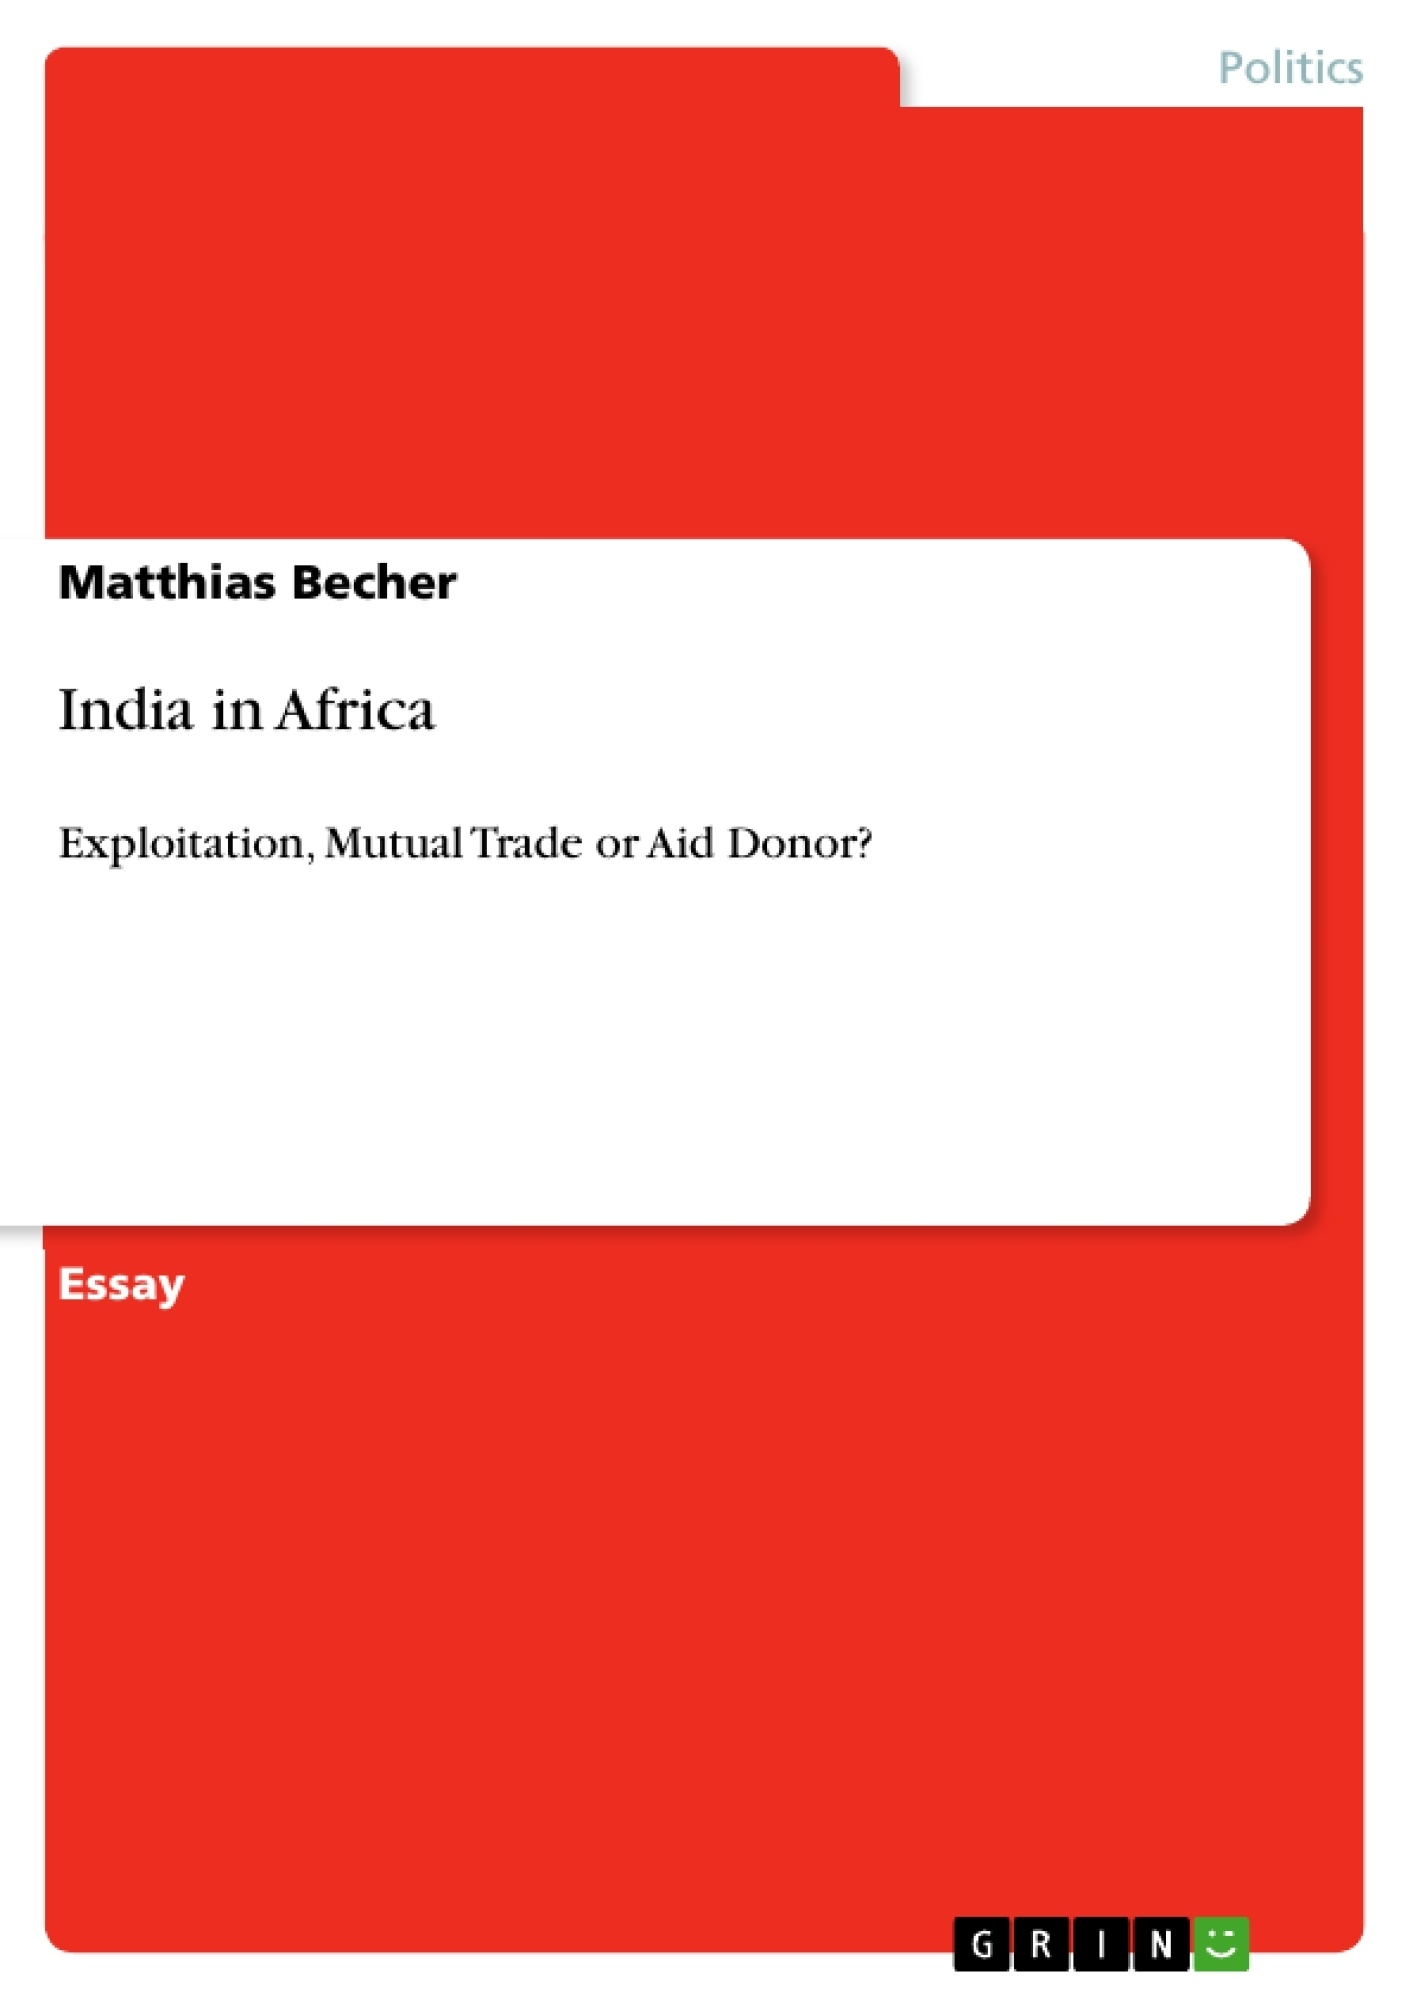 Title: India in Africa